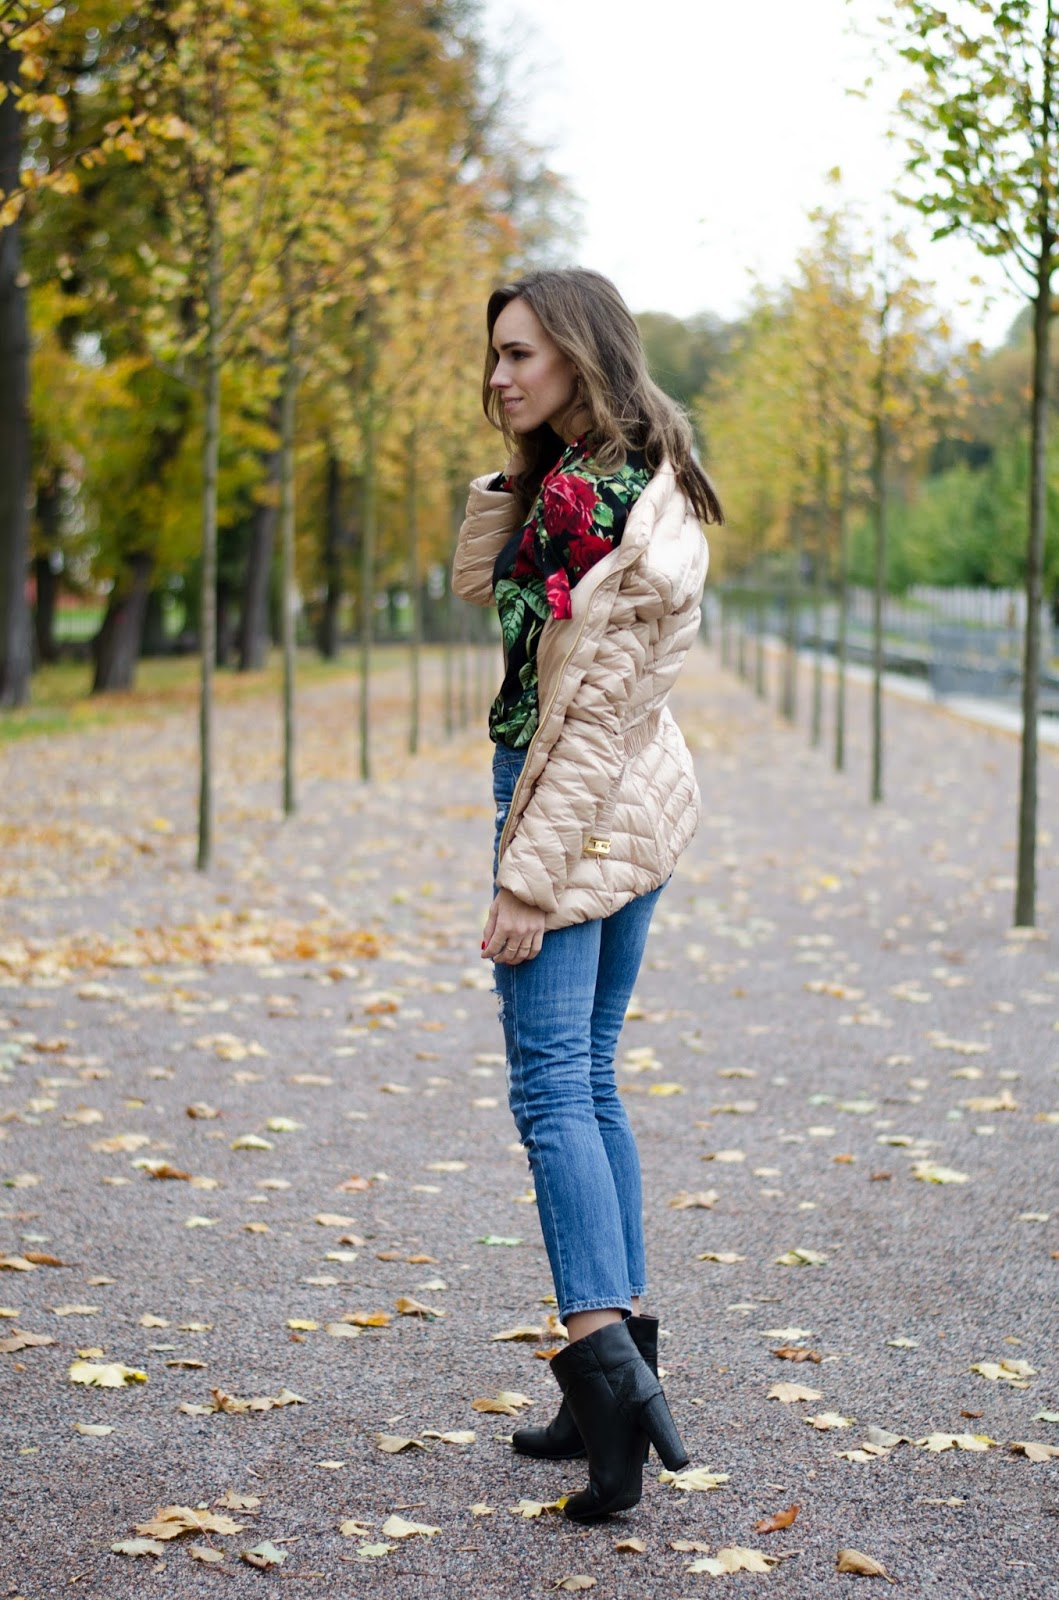 puffy jacket fall outfit